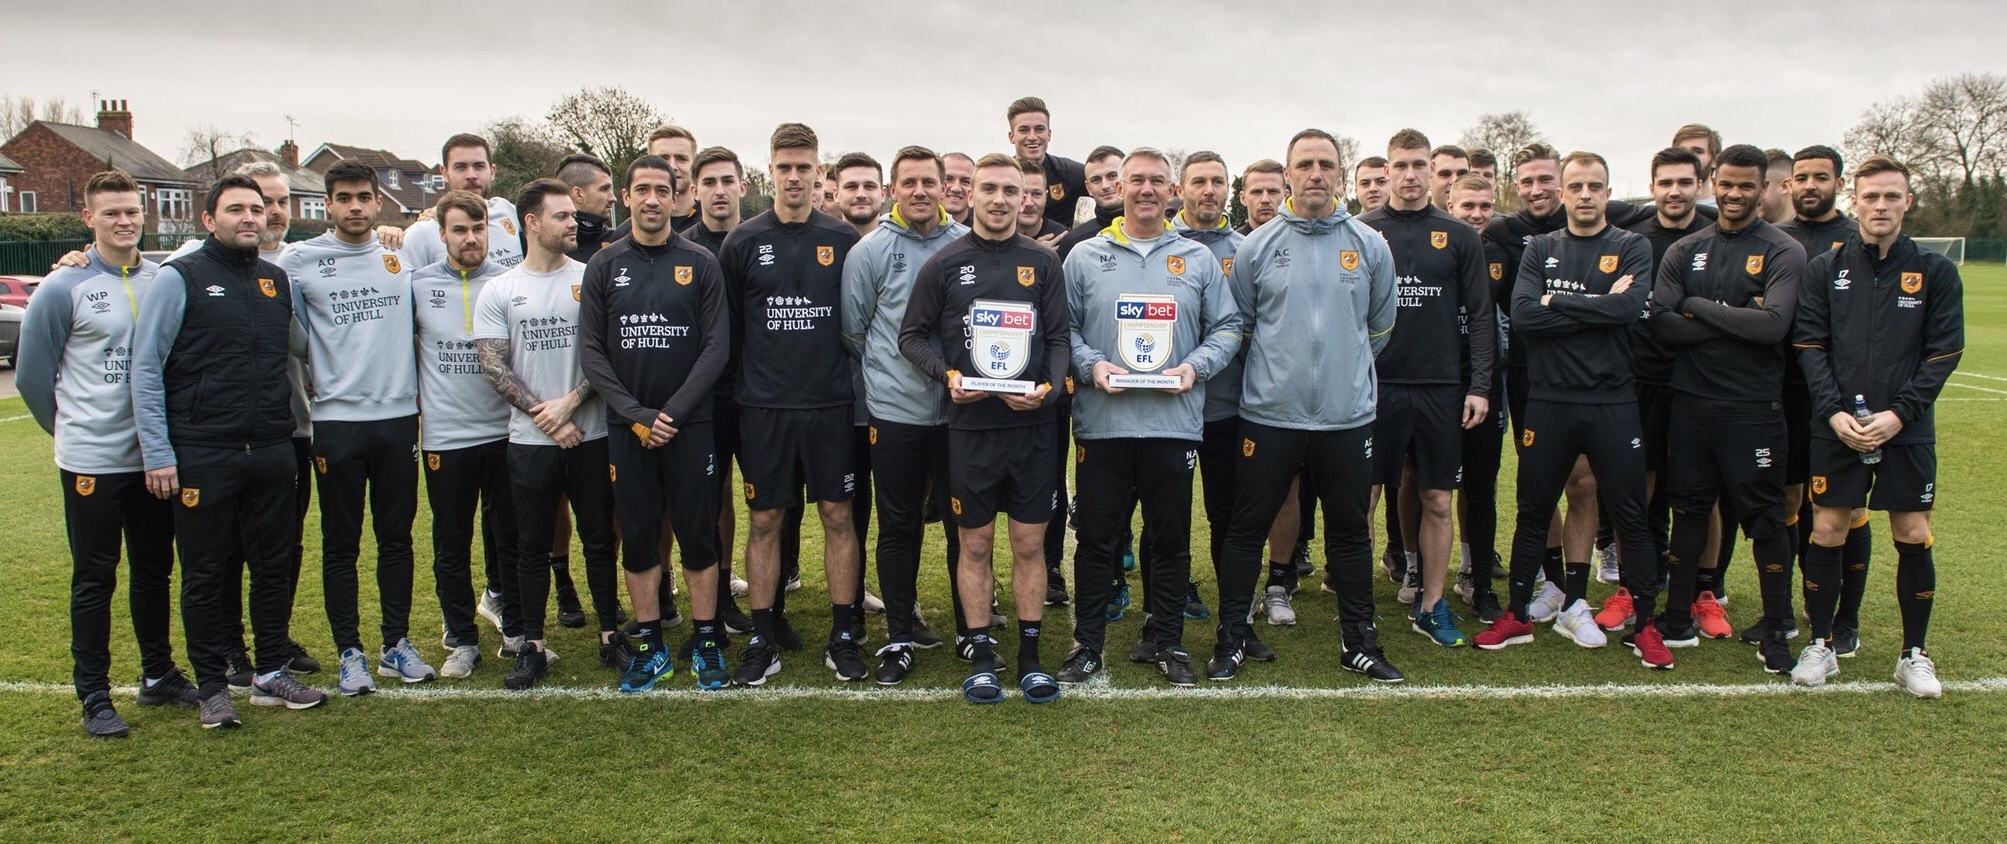 TEAM - Together Everyone Achieves More  Championship Manager of the Month December 2018